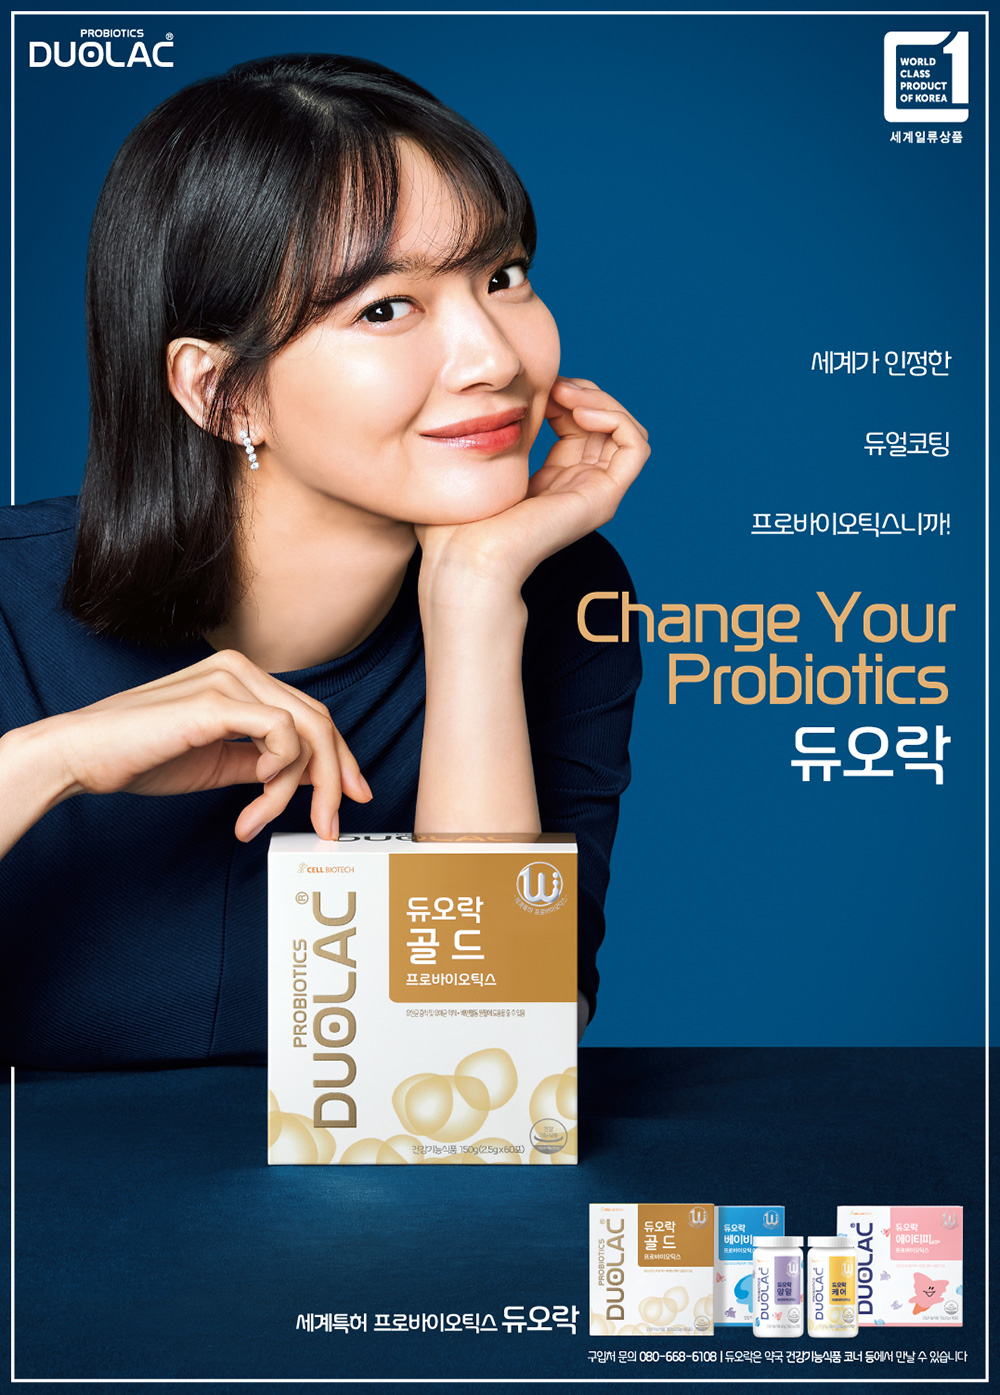 Change Your Probiotics - Duolac